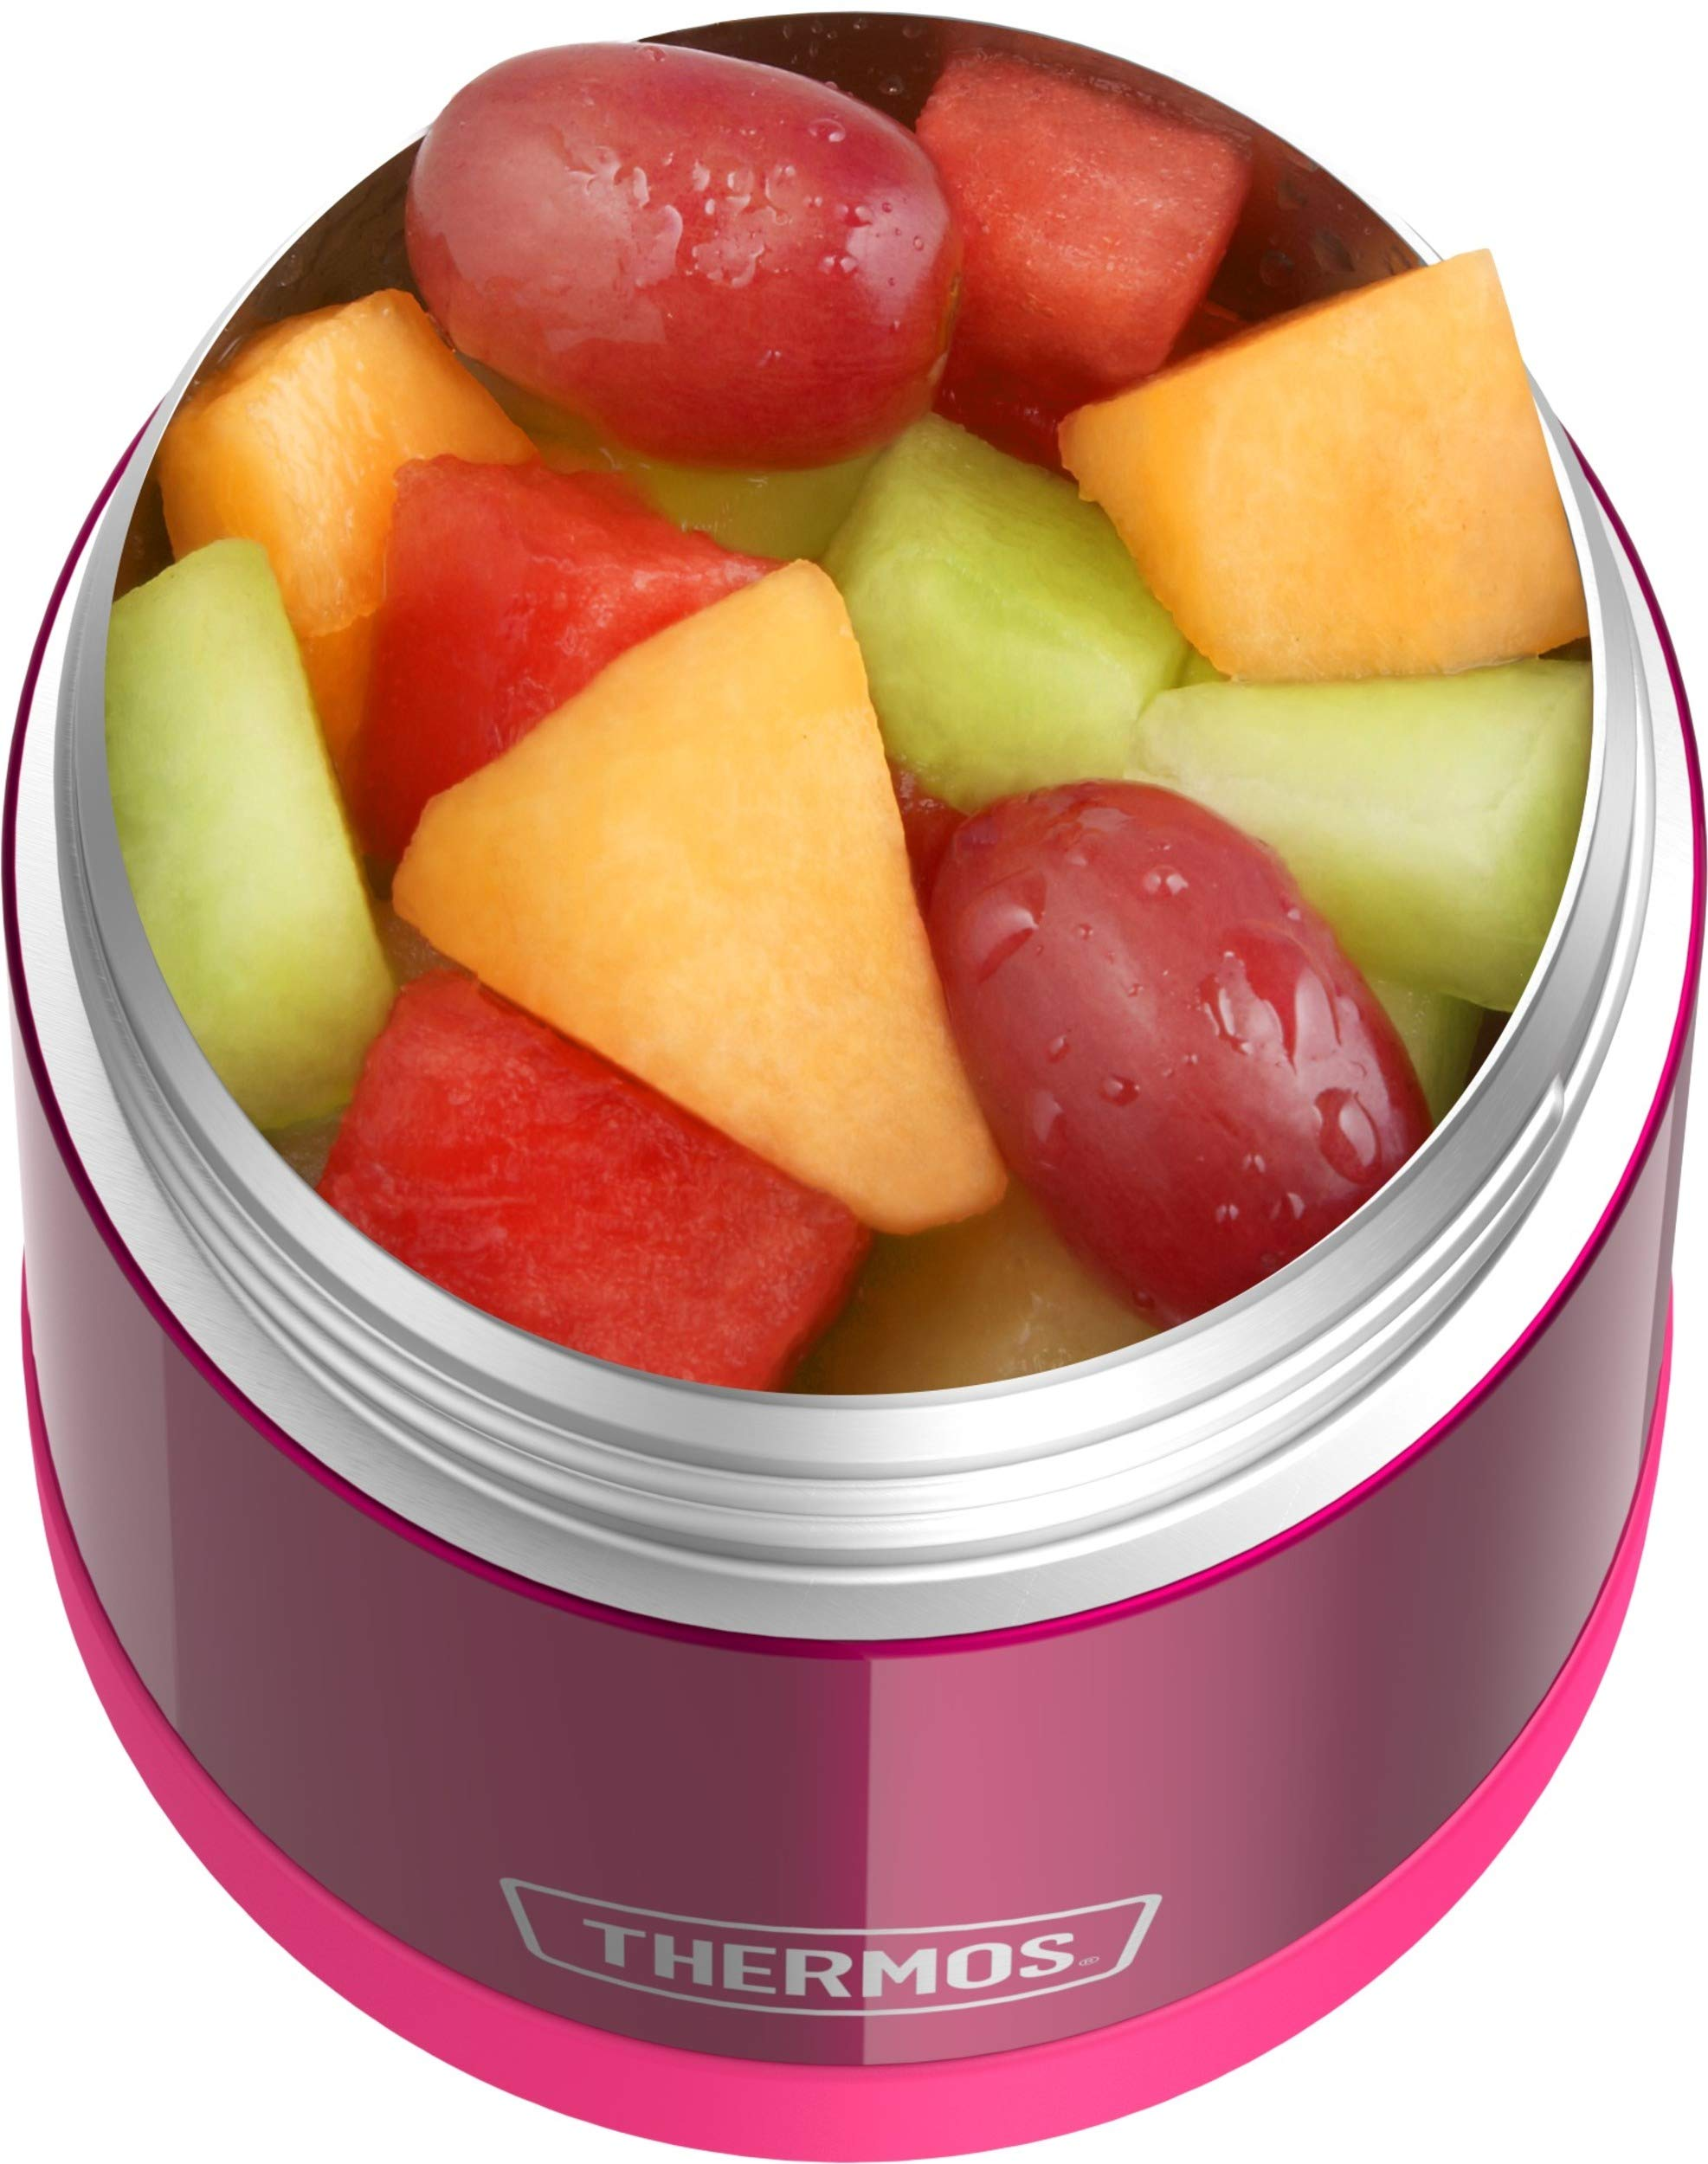 THERMOS FUNTAINER 10 Ounce Stainless Steel Vacuum Insulated Kids Food Jar, Pink